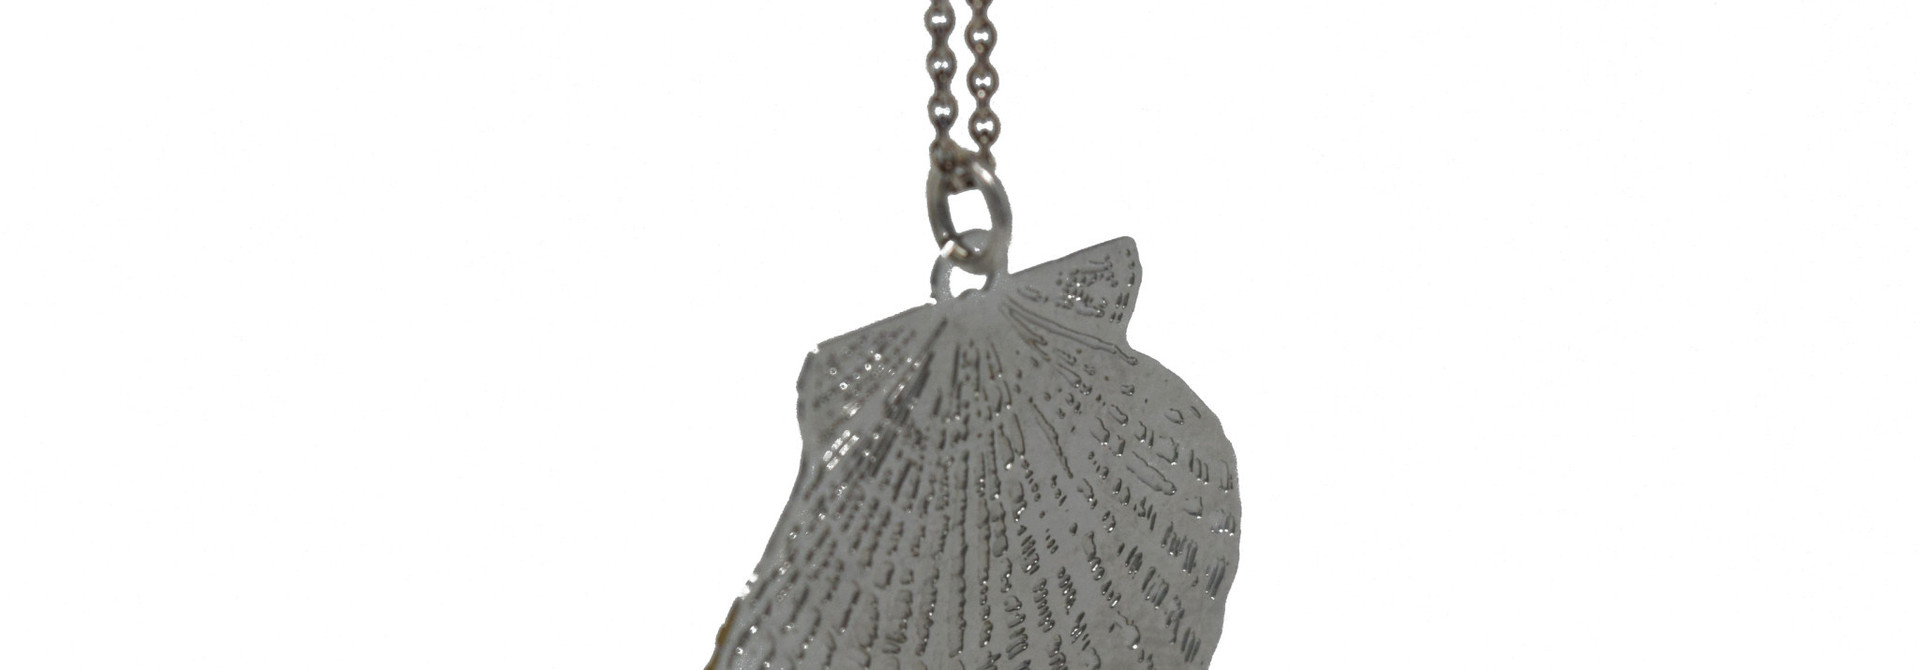 Scalloped Shell Necklace